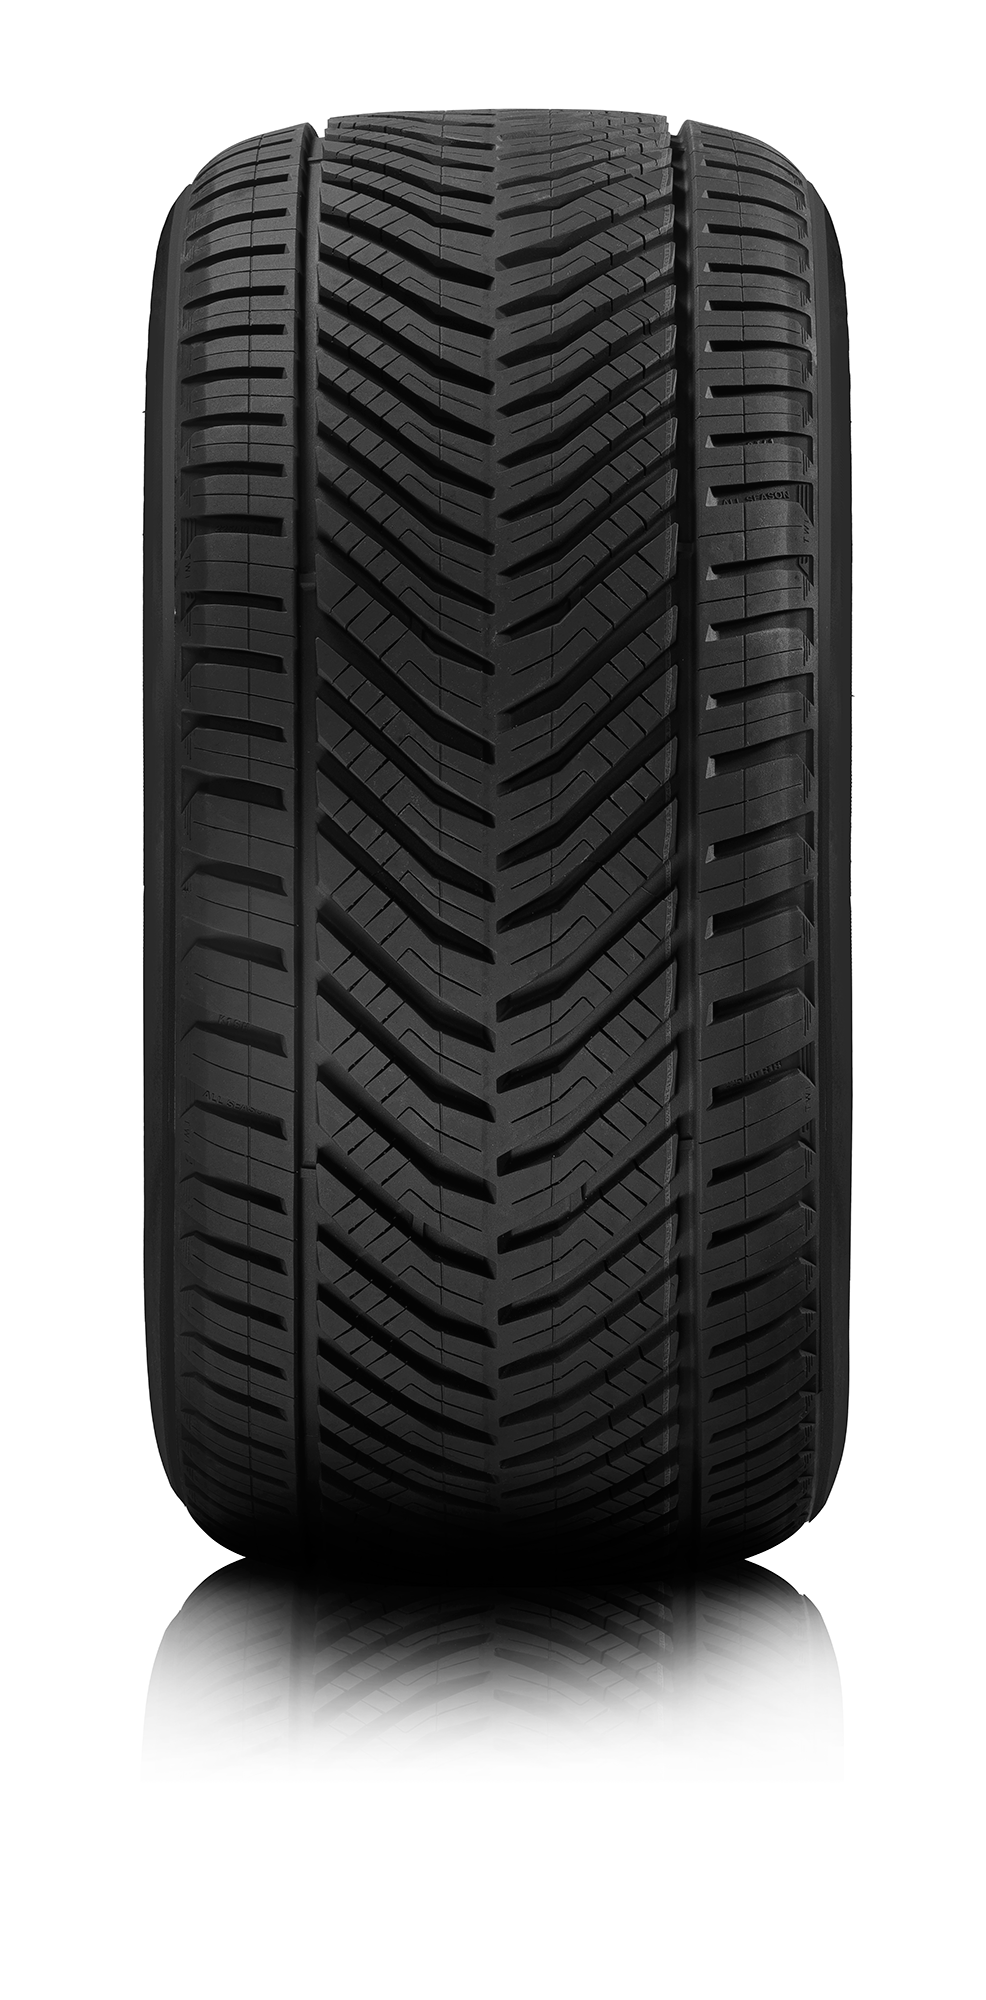 Gomme Nuove Orium 185/65 R14 86H ALL SEASON M+S pneumatici nuovi All Season